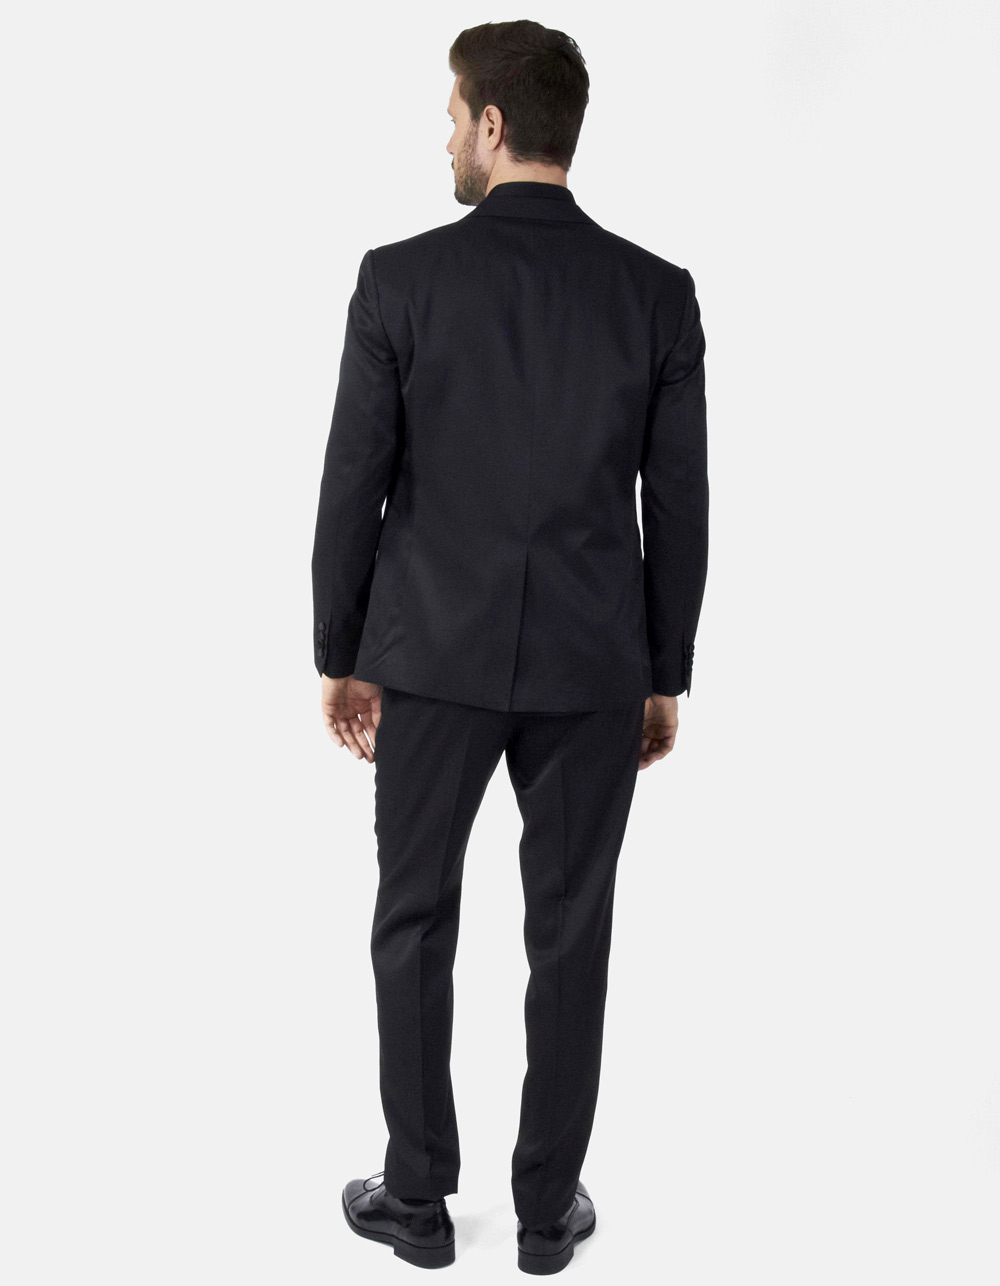 Navy blue plain suit - Backside